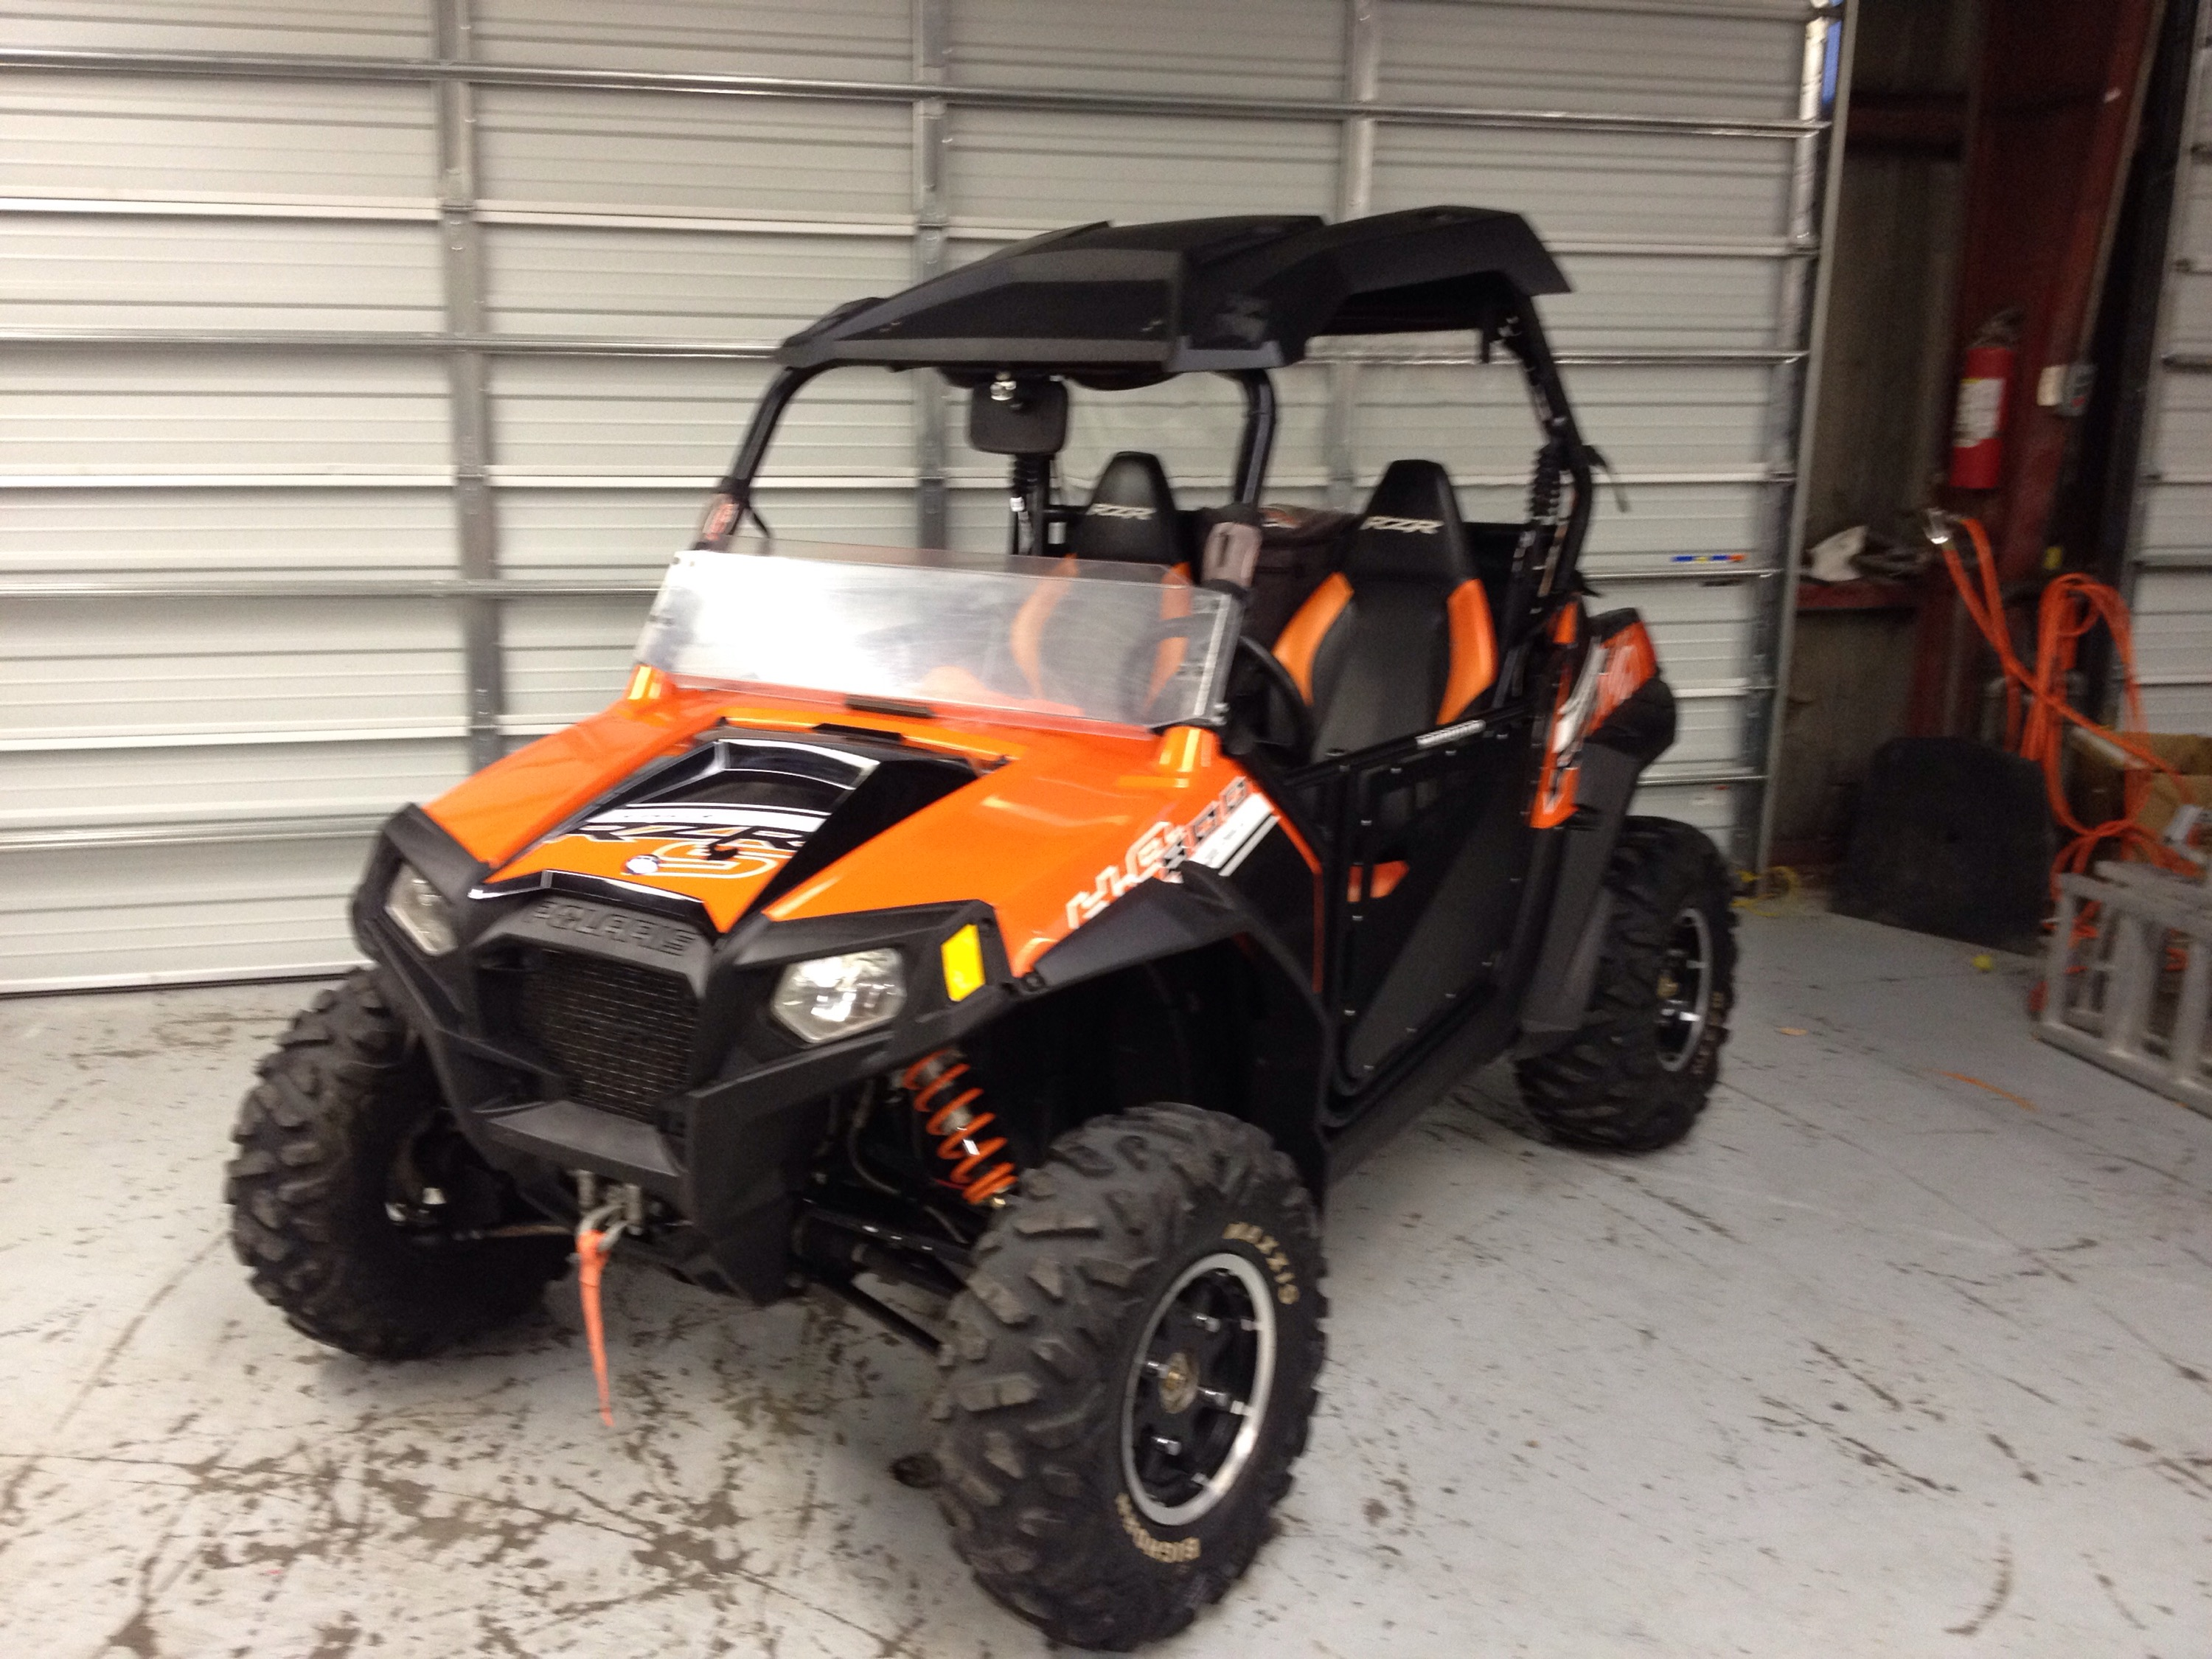 2012 polaris rzr 800 s le orange madness top 1 2 shield. Black Bedroom Furniture Sets. Home Design Ideas